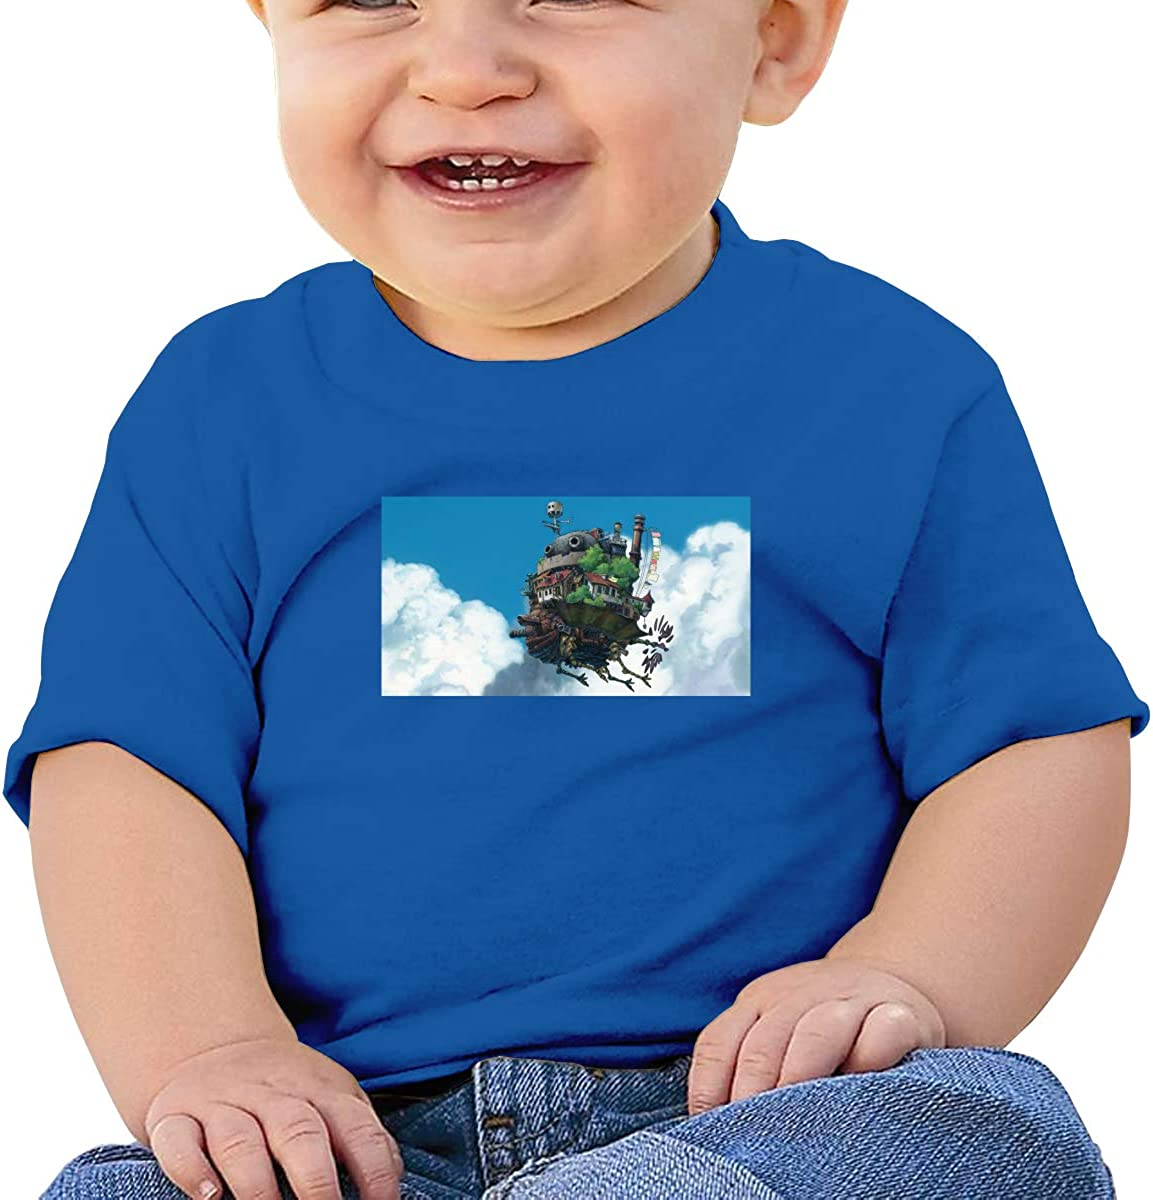 Wokeyia Baby Howls Moving Castle Black Tshirts Cute T Shirt for Baby Boy